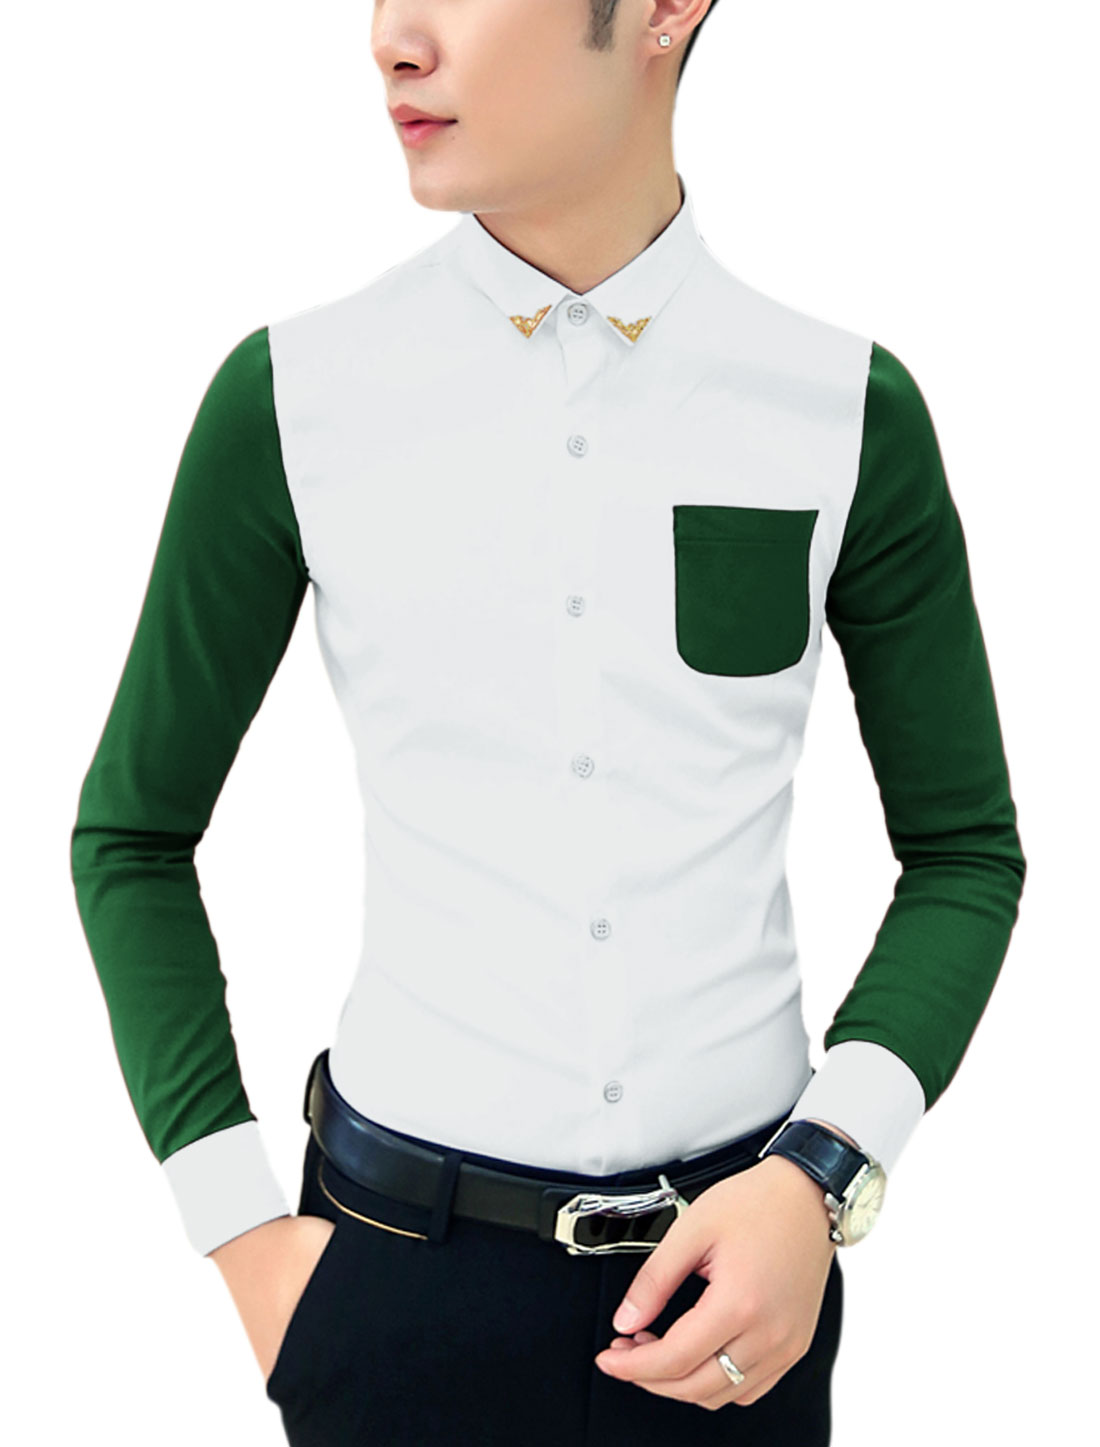 Men Metal Collar Tips Panel Contrast Chest Pocket Newly Shirt Green White M